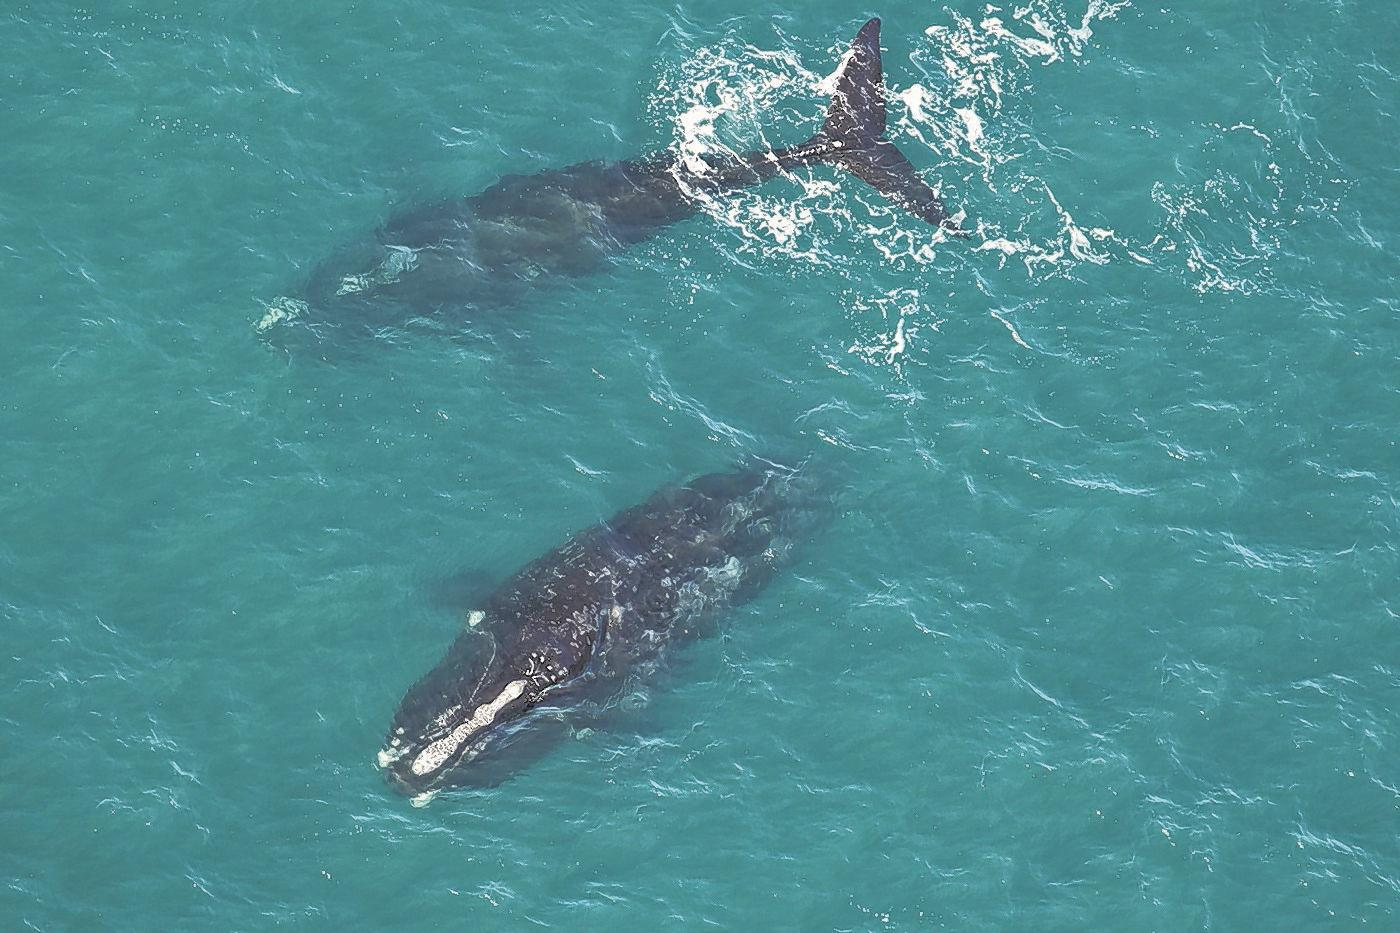 Endangered right whales population at about 413, expert reports in update